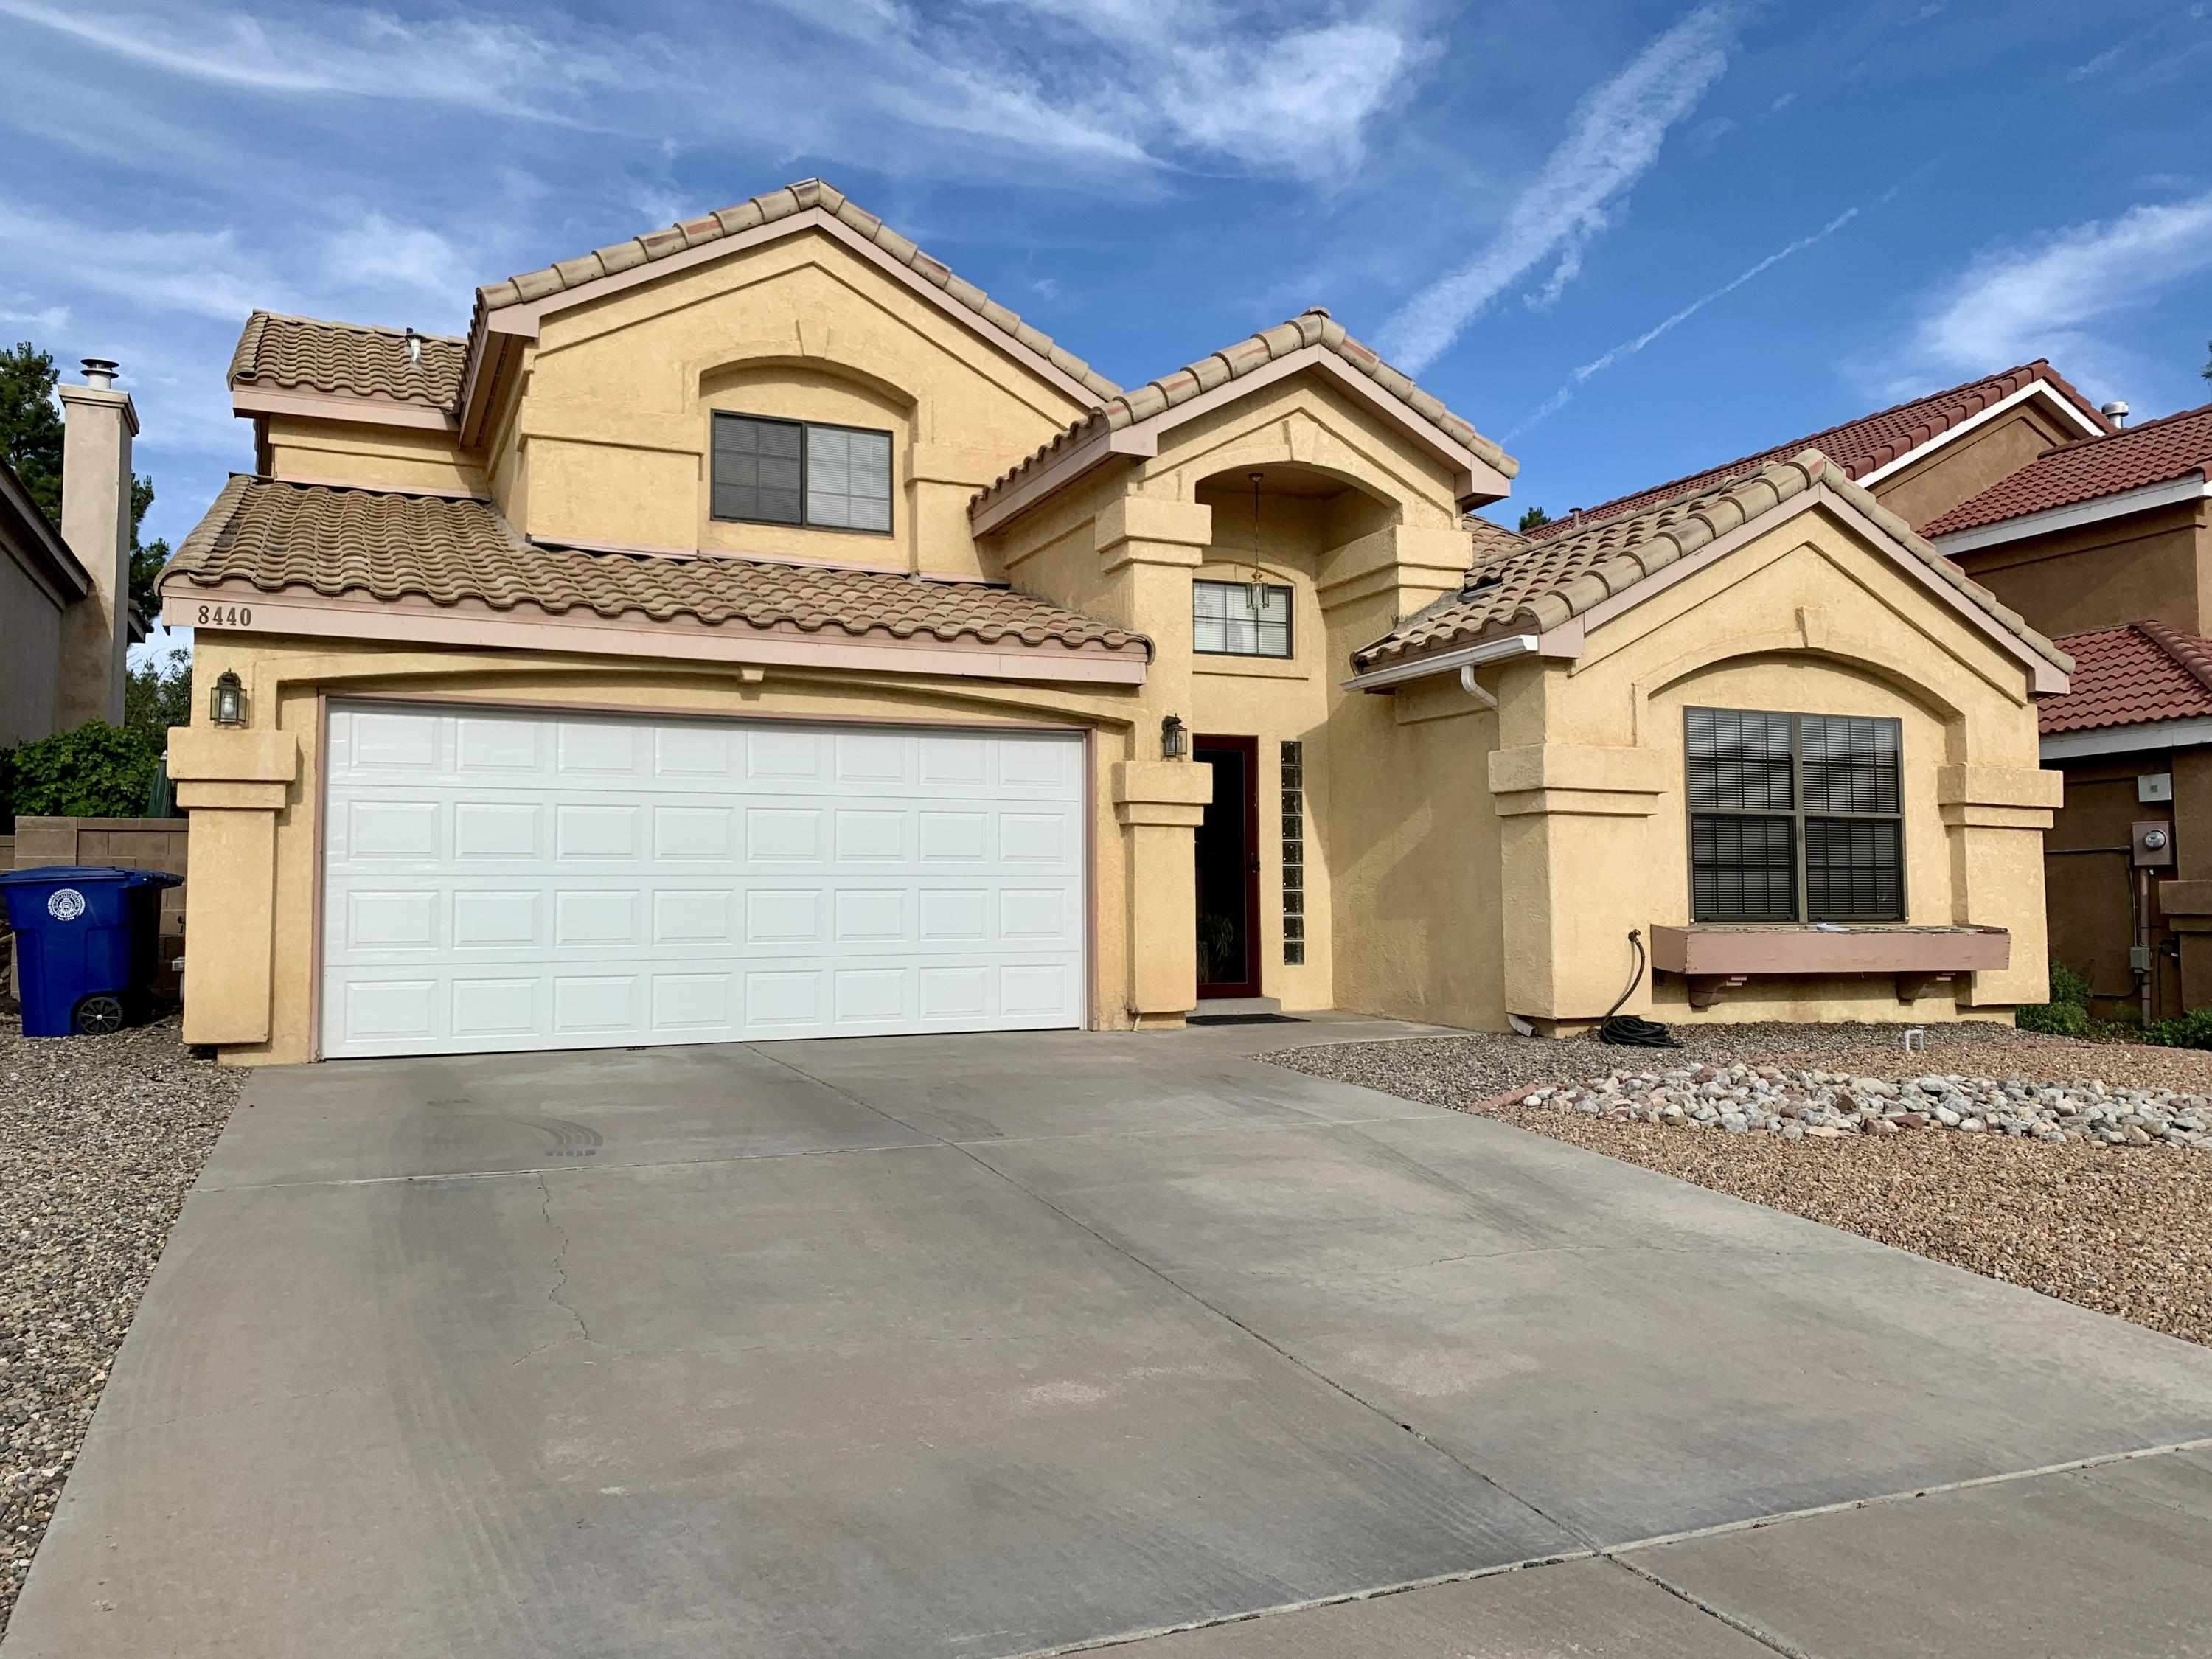 This NE heights home quite literally has it all!Located just walking distance from La Cueva HS, it is in one of the highest rated school districts in NM. Separate formal Living/Dining rooms in front, Kitchen, Breakfast Nook, Family room in the back of the home.  With 4 bedrooms, Including one on the main floor, 3 full bathrooms, Master is upstairs with a fantastic view deck.  The east facing backyard is a private retreat, sunny in the morning, shady and cool in the evening.